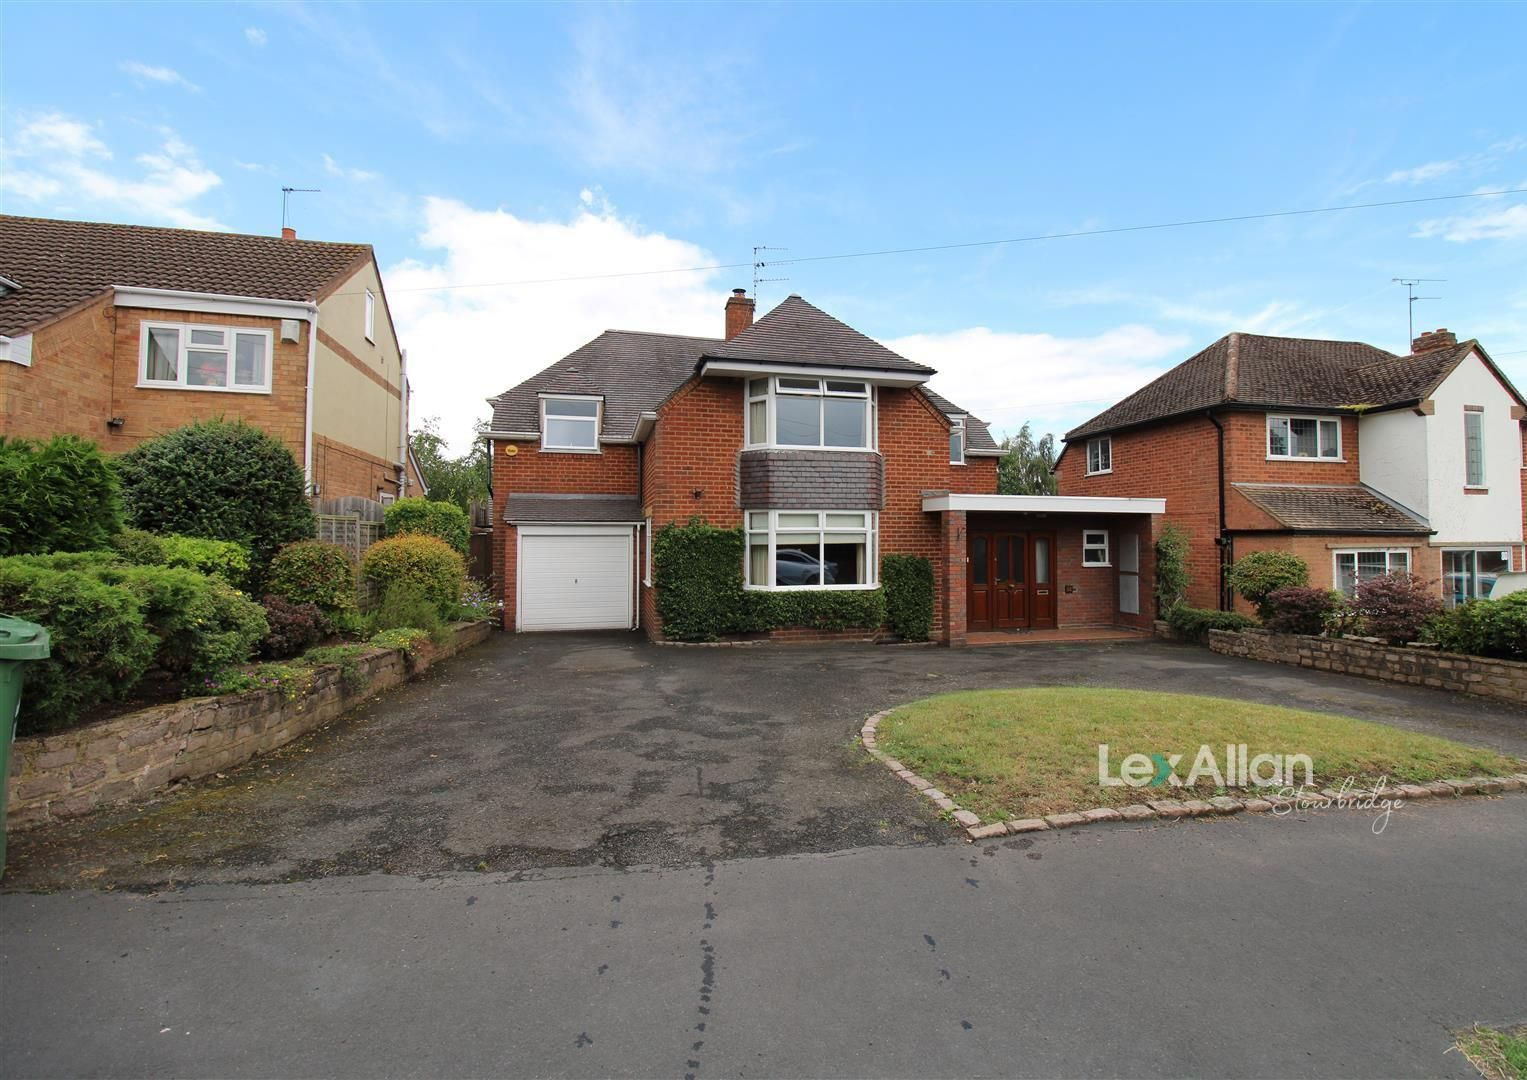 3 bed detached for sale in Norton, DY8